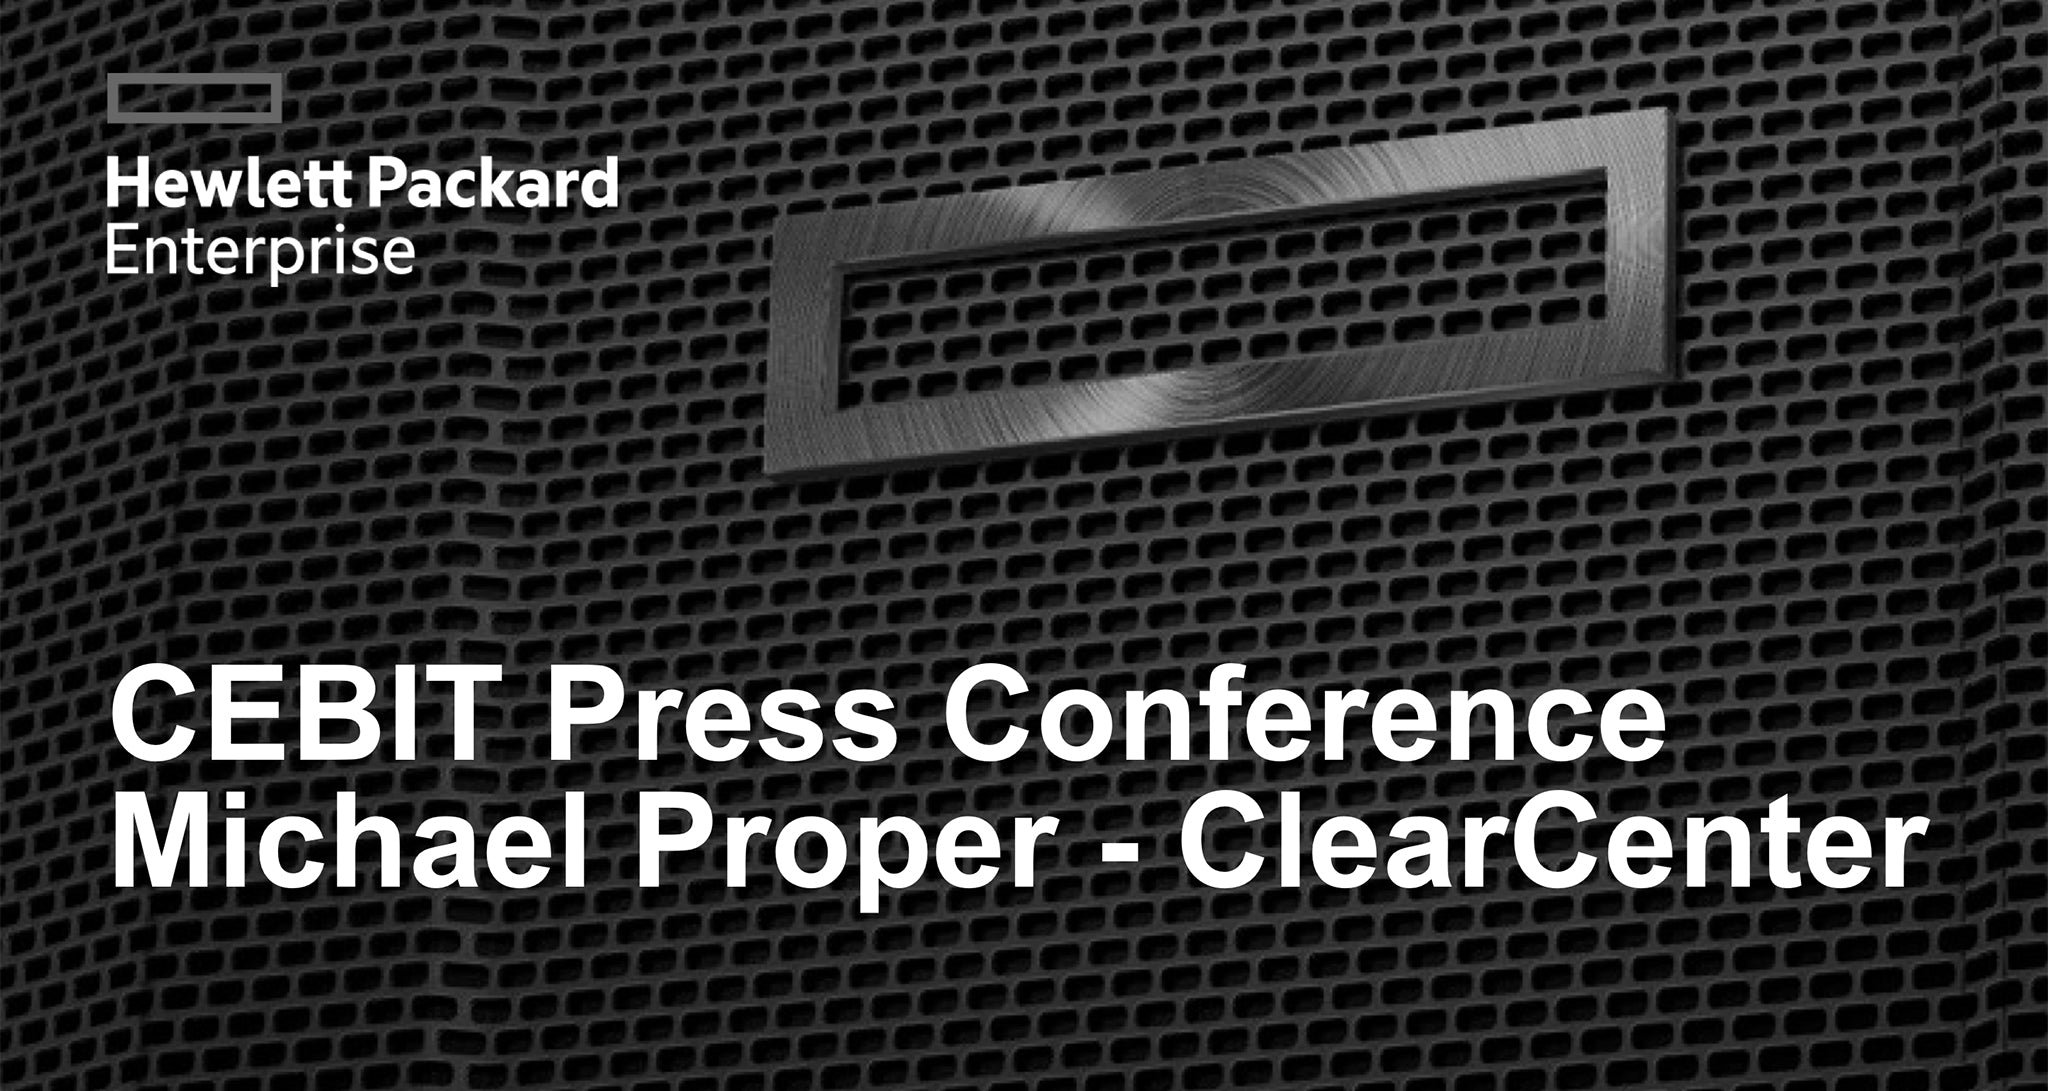 HPE and ClearCenter CEBIT 2018 Press Conference - ClearNODE Q&A